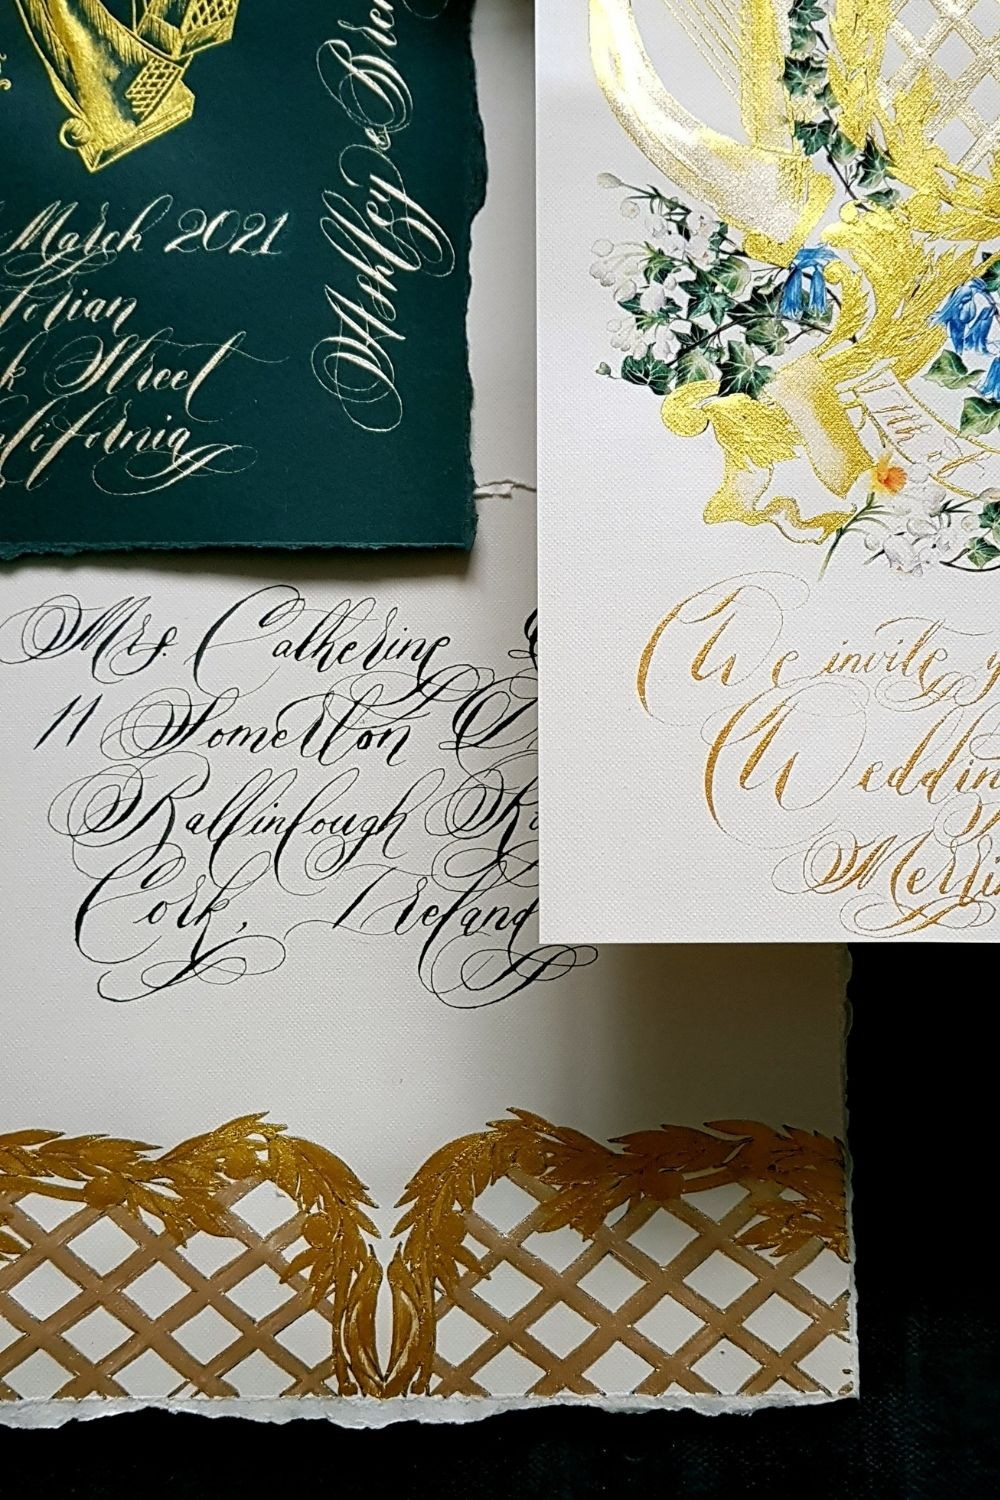 Ireland wedding invitations featuring custom designed diamond pattern and ornate gold and dark green hues